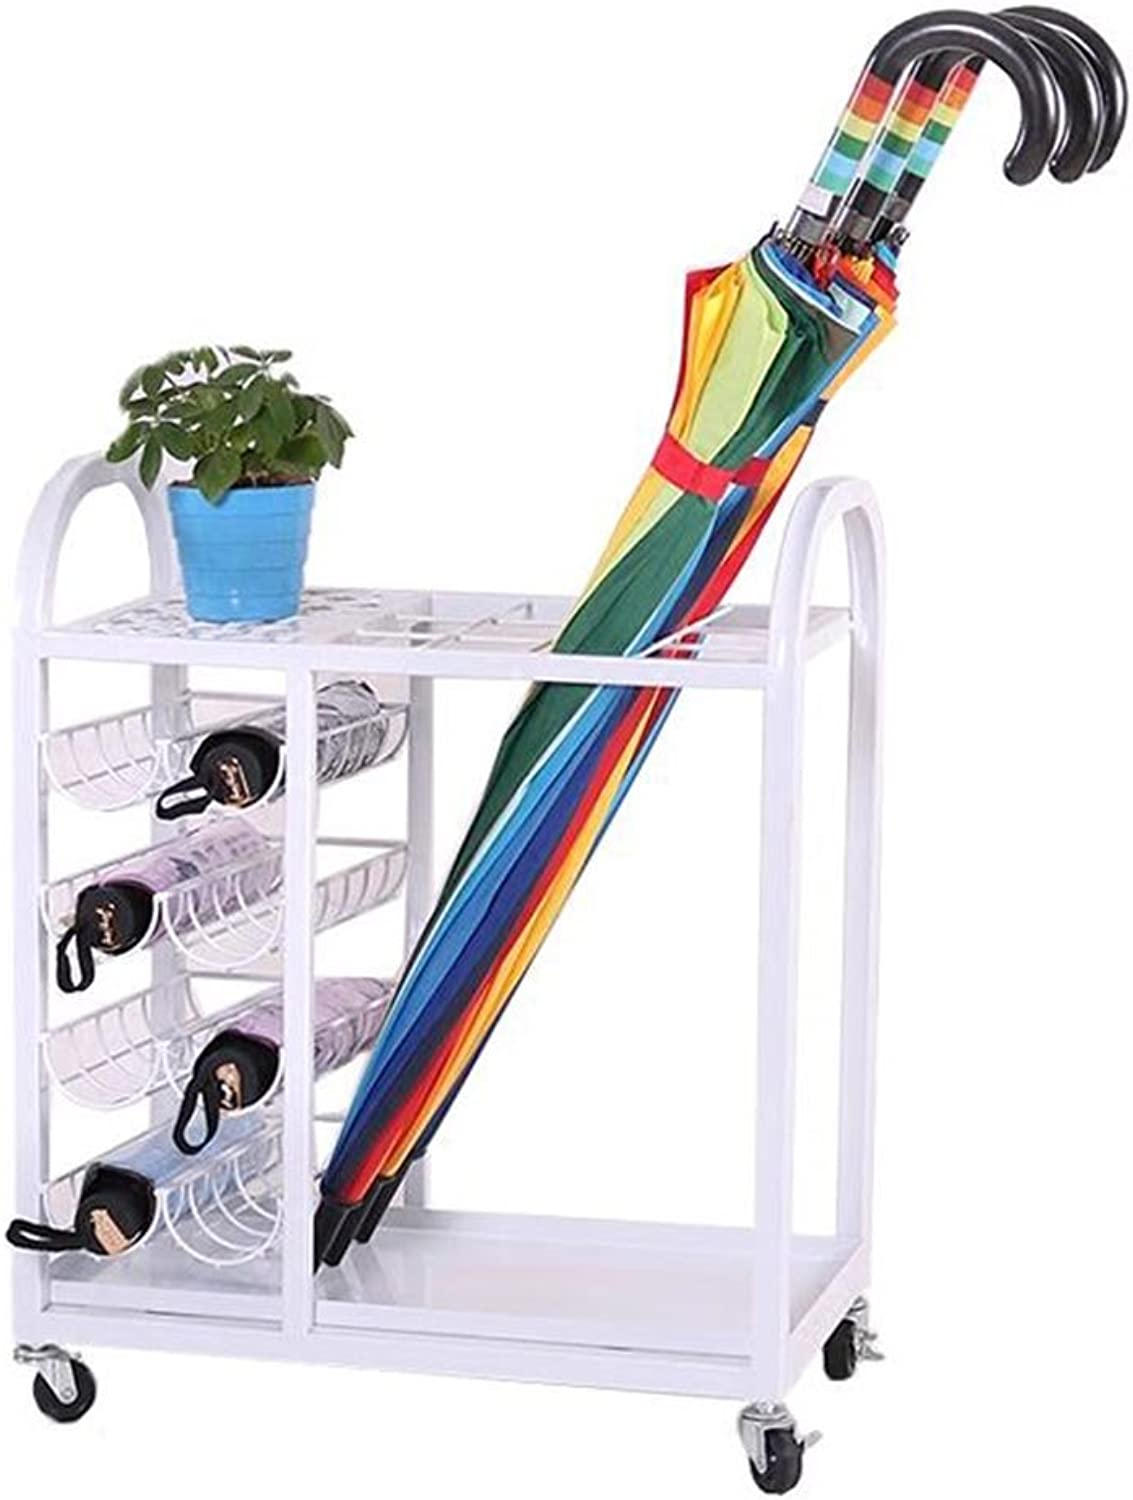 Umbrella Stand Household Rain Gear Storage Rack Hotel Lobby Office Floor Stand with Pulley White A_